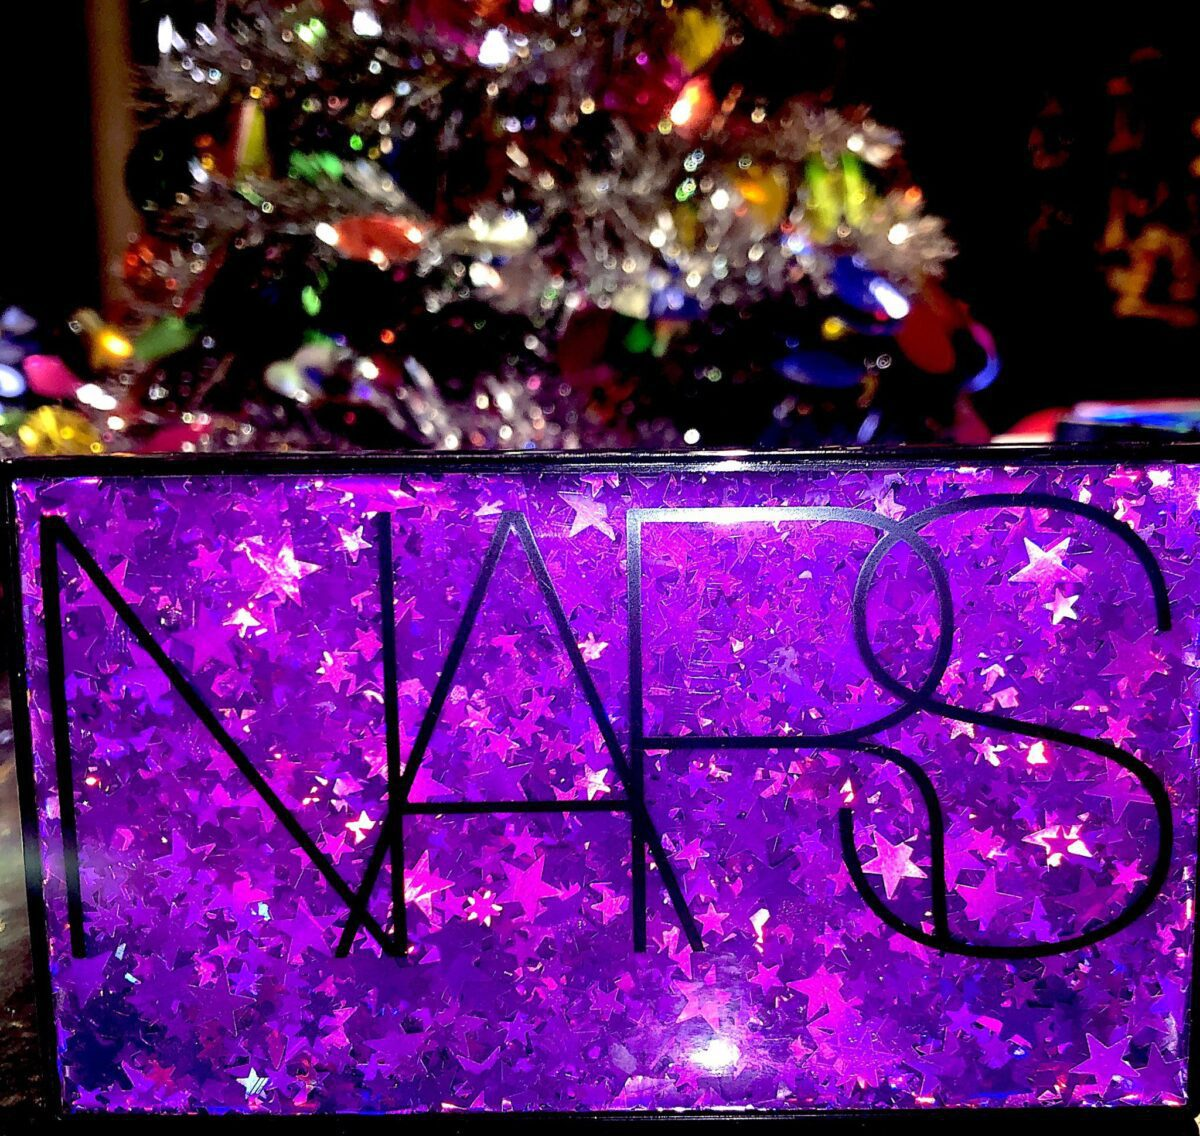 NARS STUDIO 54 HOLIDAY HYPED EYESHADOW PALETTE COMPACT CASE